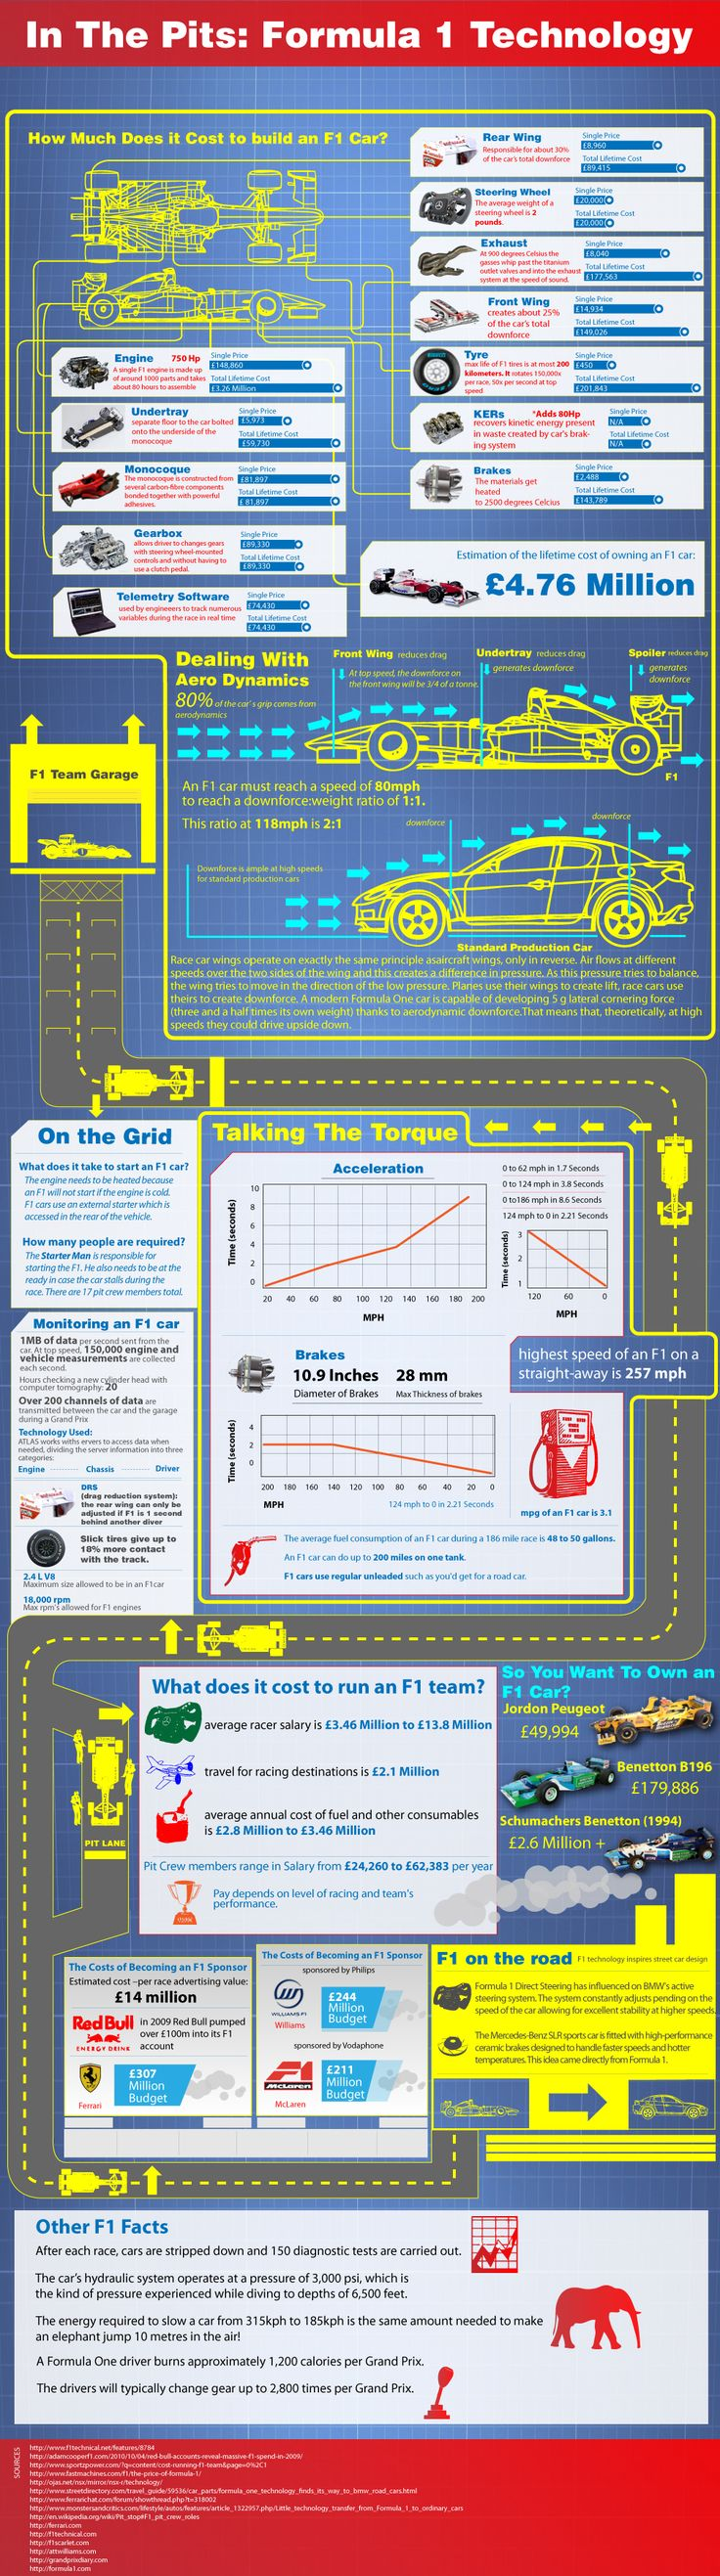 This F1 infographic will blow your mind! Were you aware that an F1 car's steering wheel costs more than your average family hatchback? Or that the cost to run an F1 car over its lifespan will set you back more than £4 million? Even better, did you know that a gearbox in an F1 car costs nearly £90,000 and the engine producing 750HP costs an almighty £150,000?